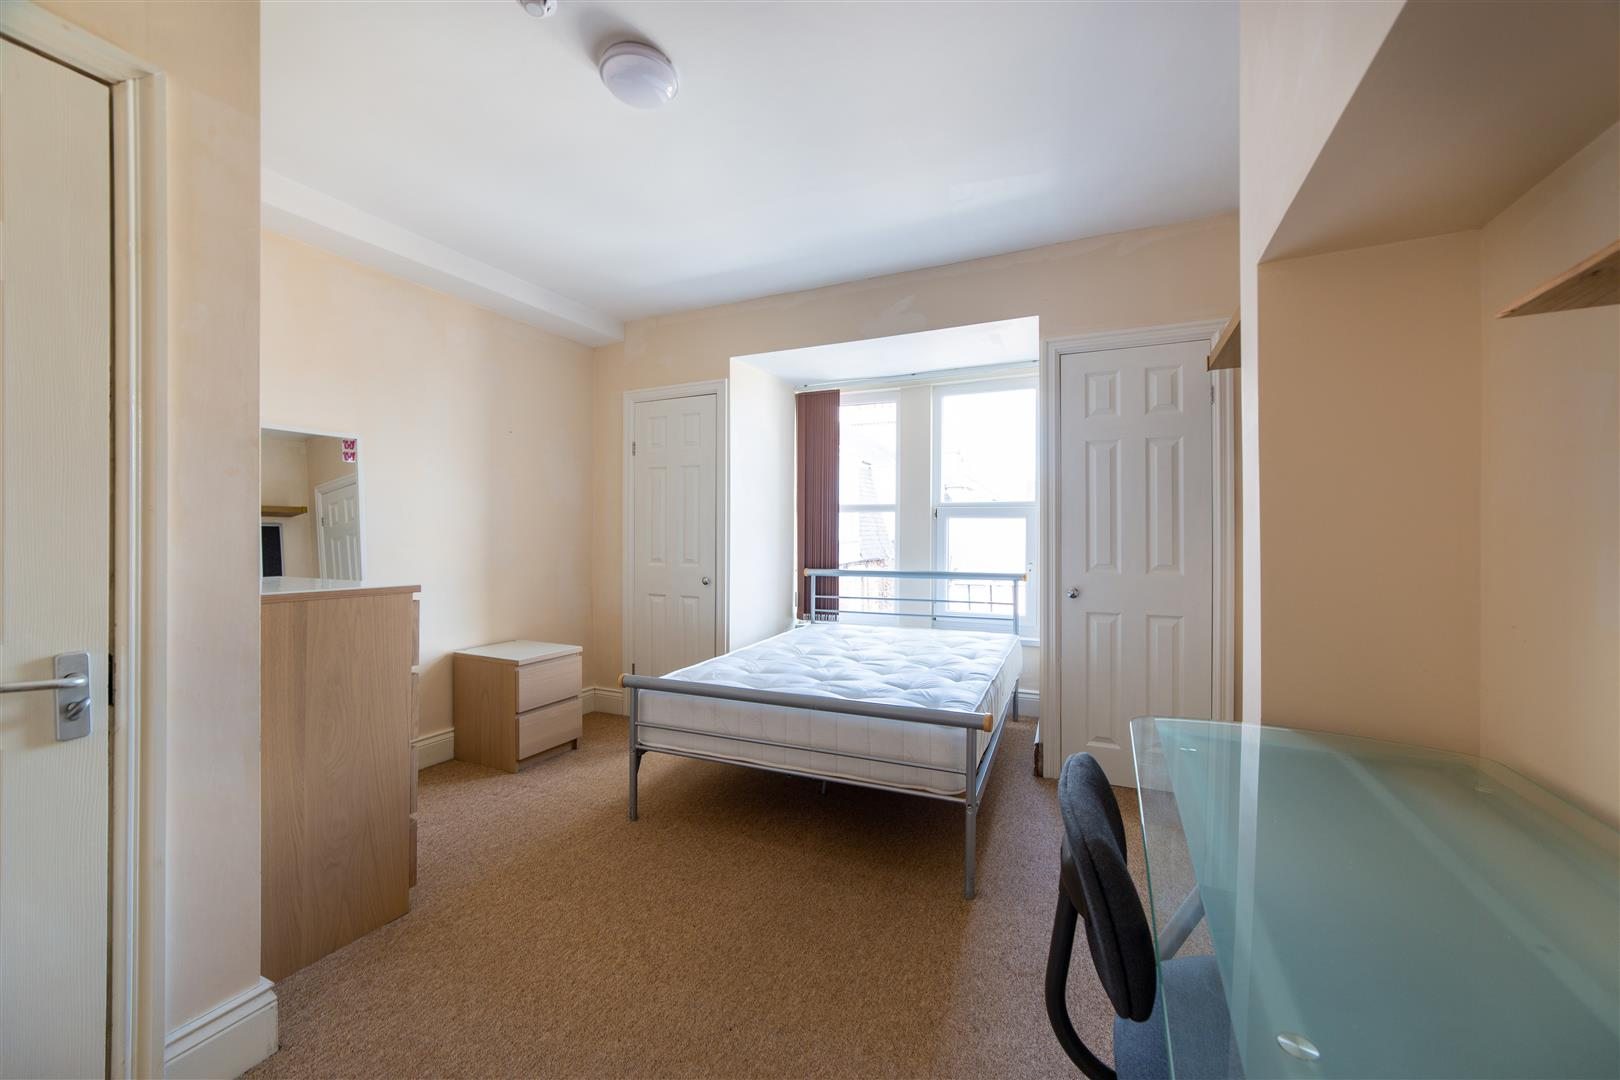 8 bed terraced house to rent in Newcastle Upon Tyne, NE2 1JS  - Property Image 12